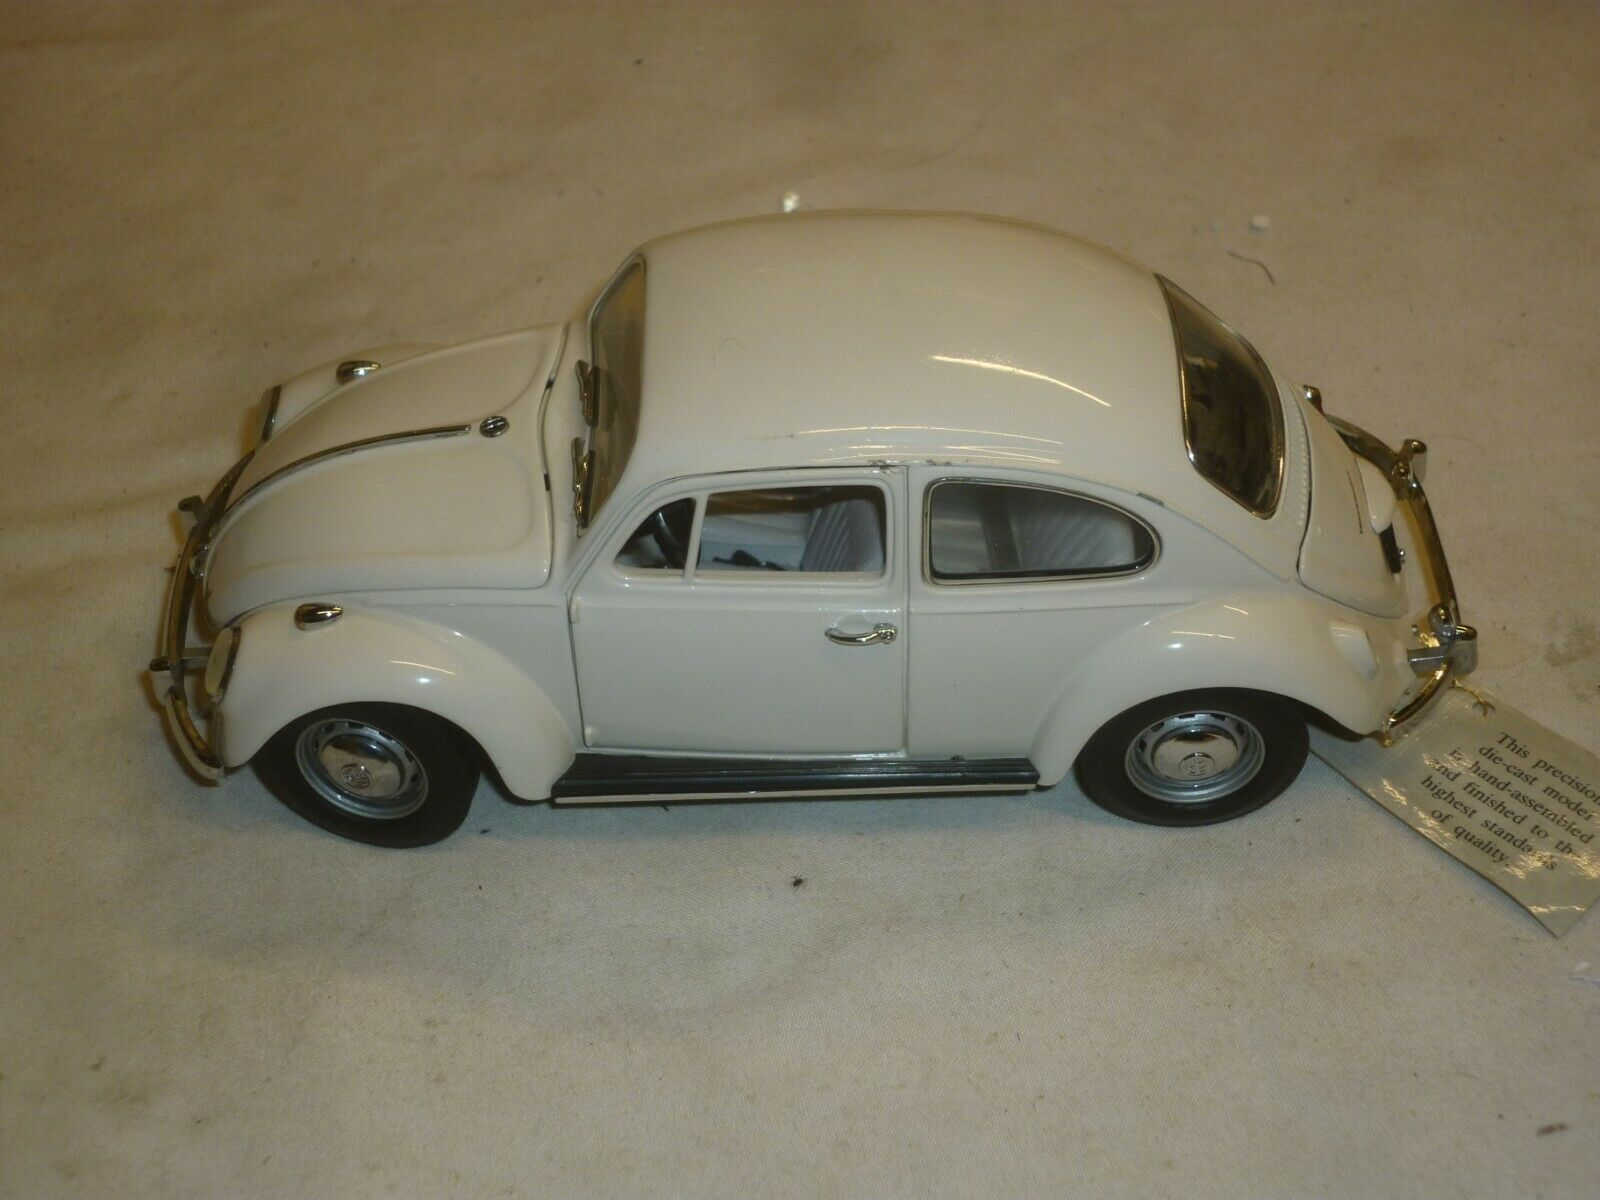 Franklin mint Scale model of a 1967 Volkswagen Beetle, no box